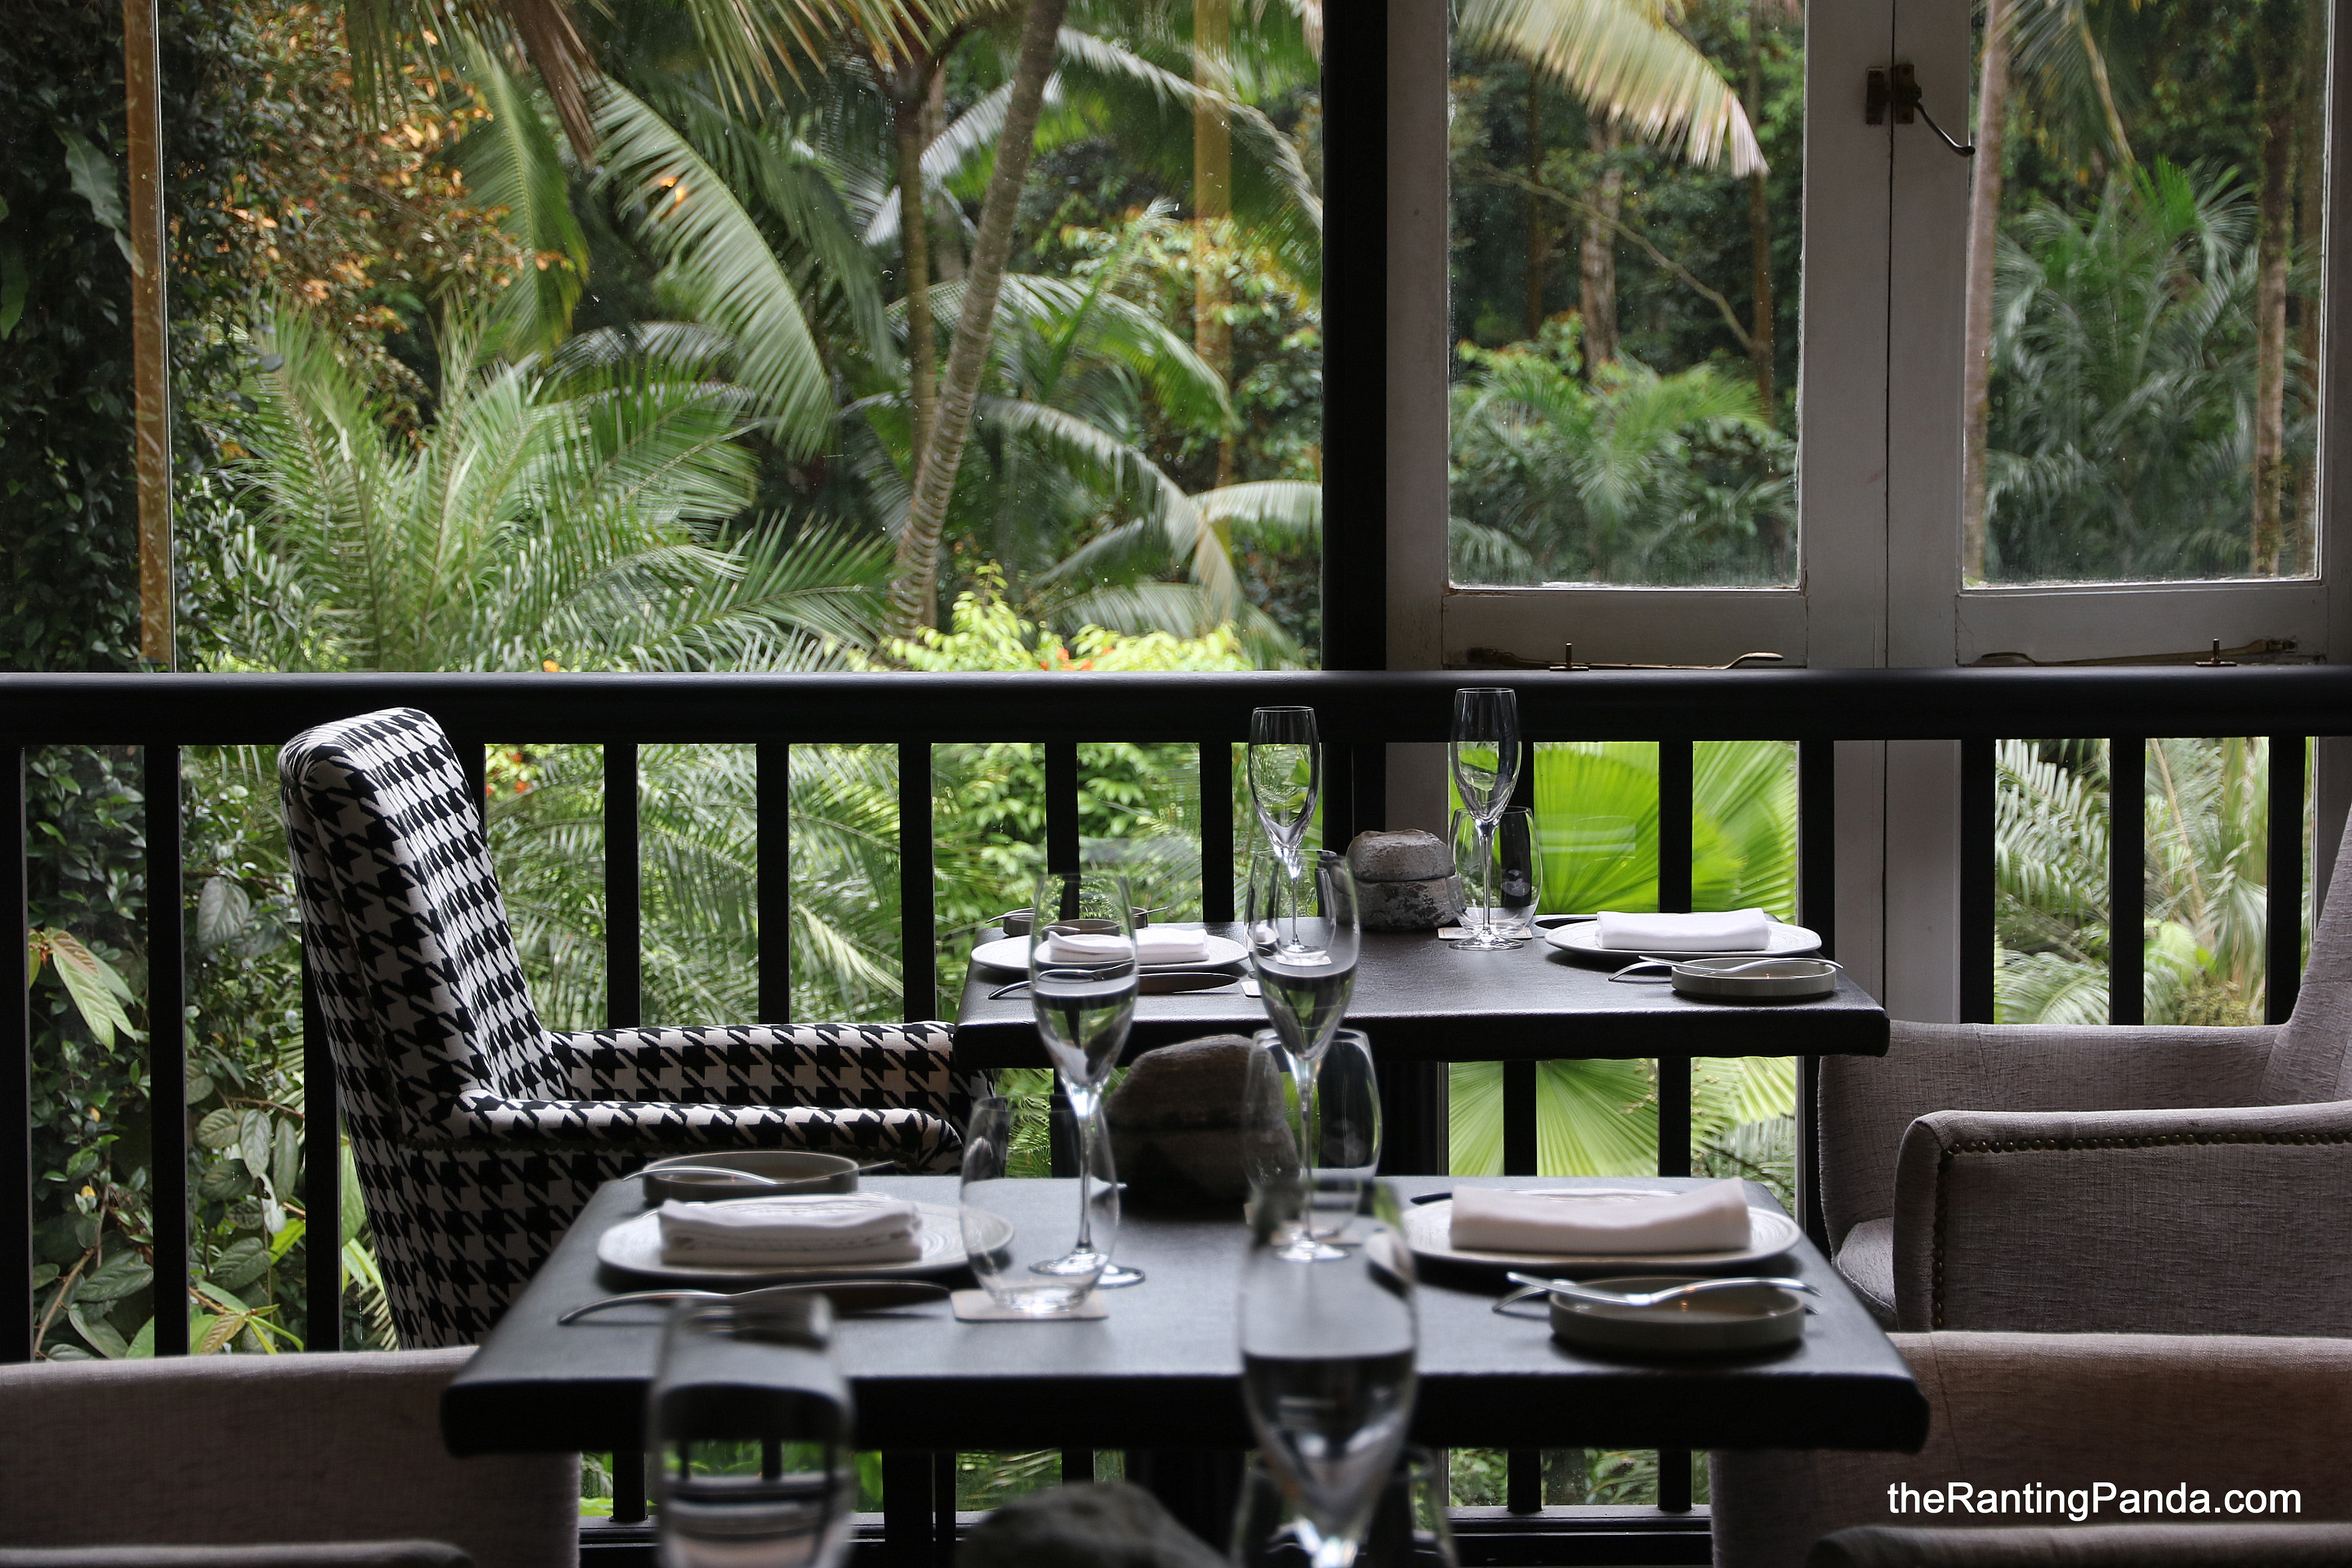 Snippets the most romantic restaurants in singapore perfect spots to spend valentines day or your anniversary